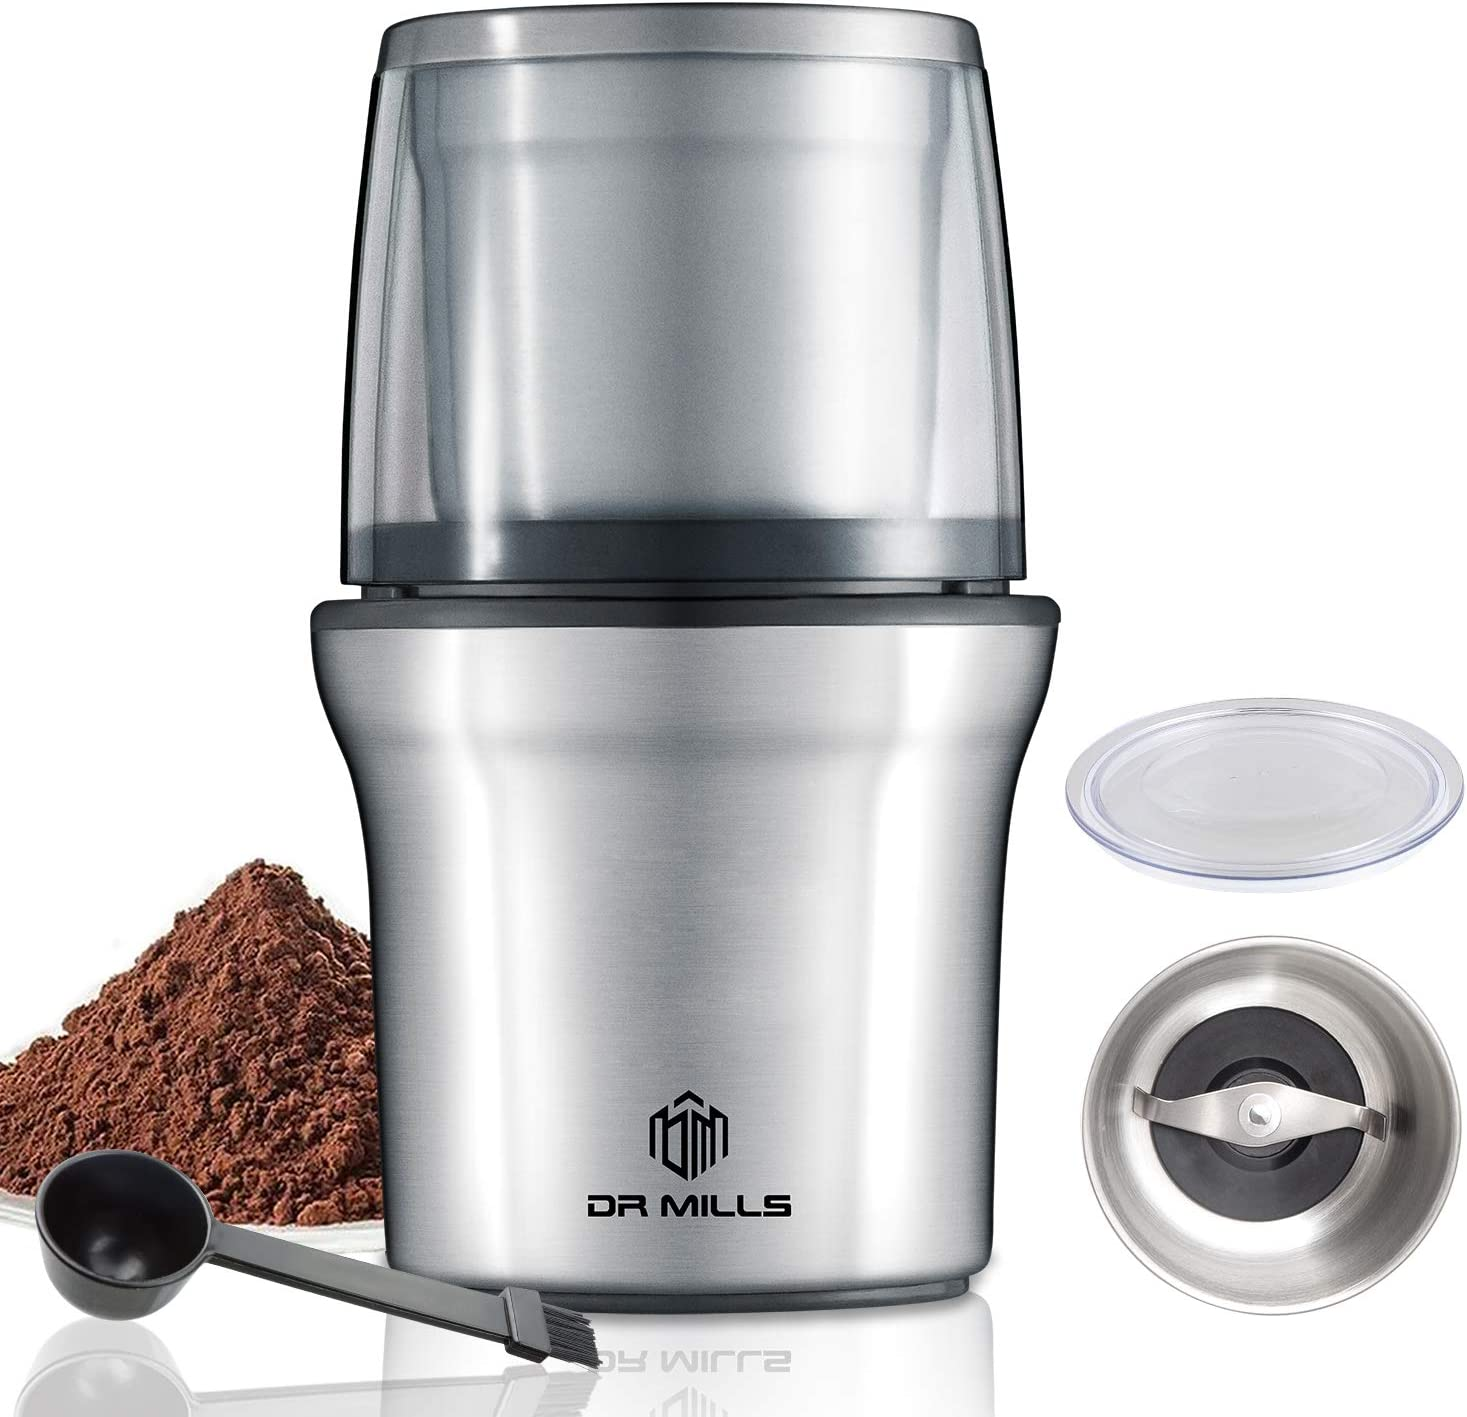 DR MILLS DM-7412N Electric Dried Spice and Coffee Grinder, detachable cup, OK for clean it with water, Blade & cup made with SUS304 stianlees steel